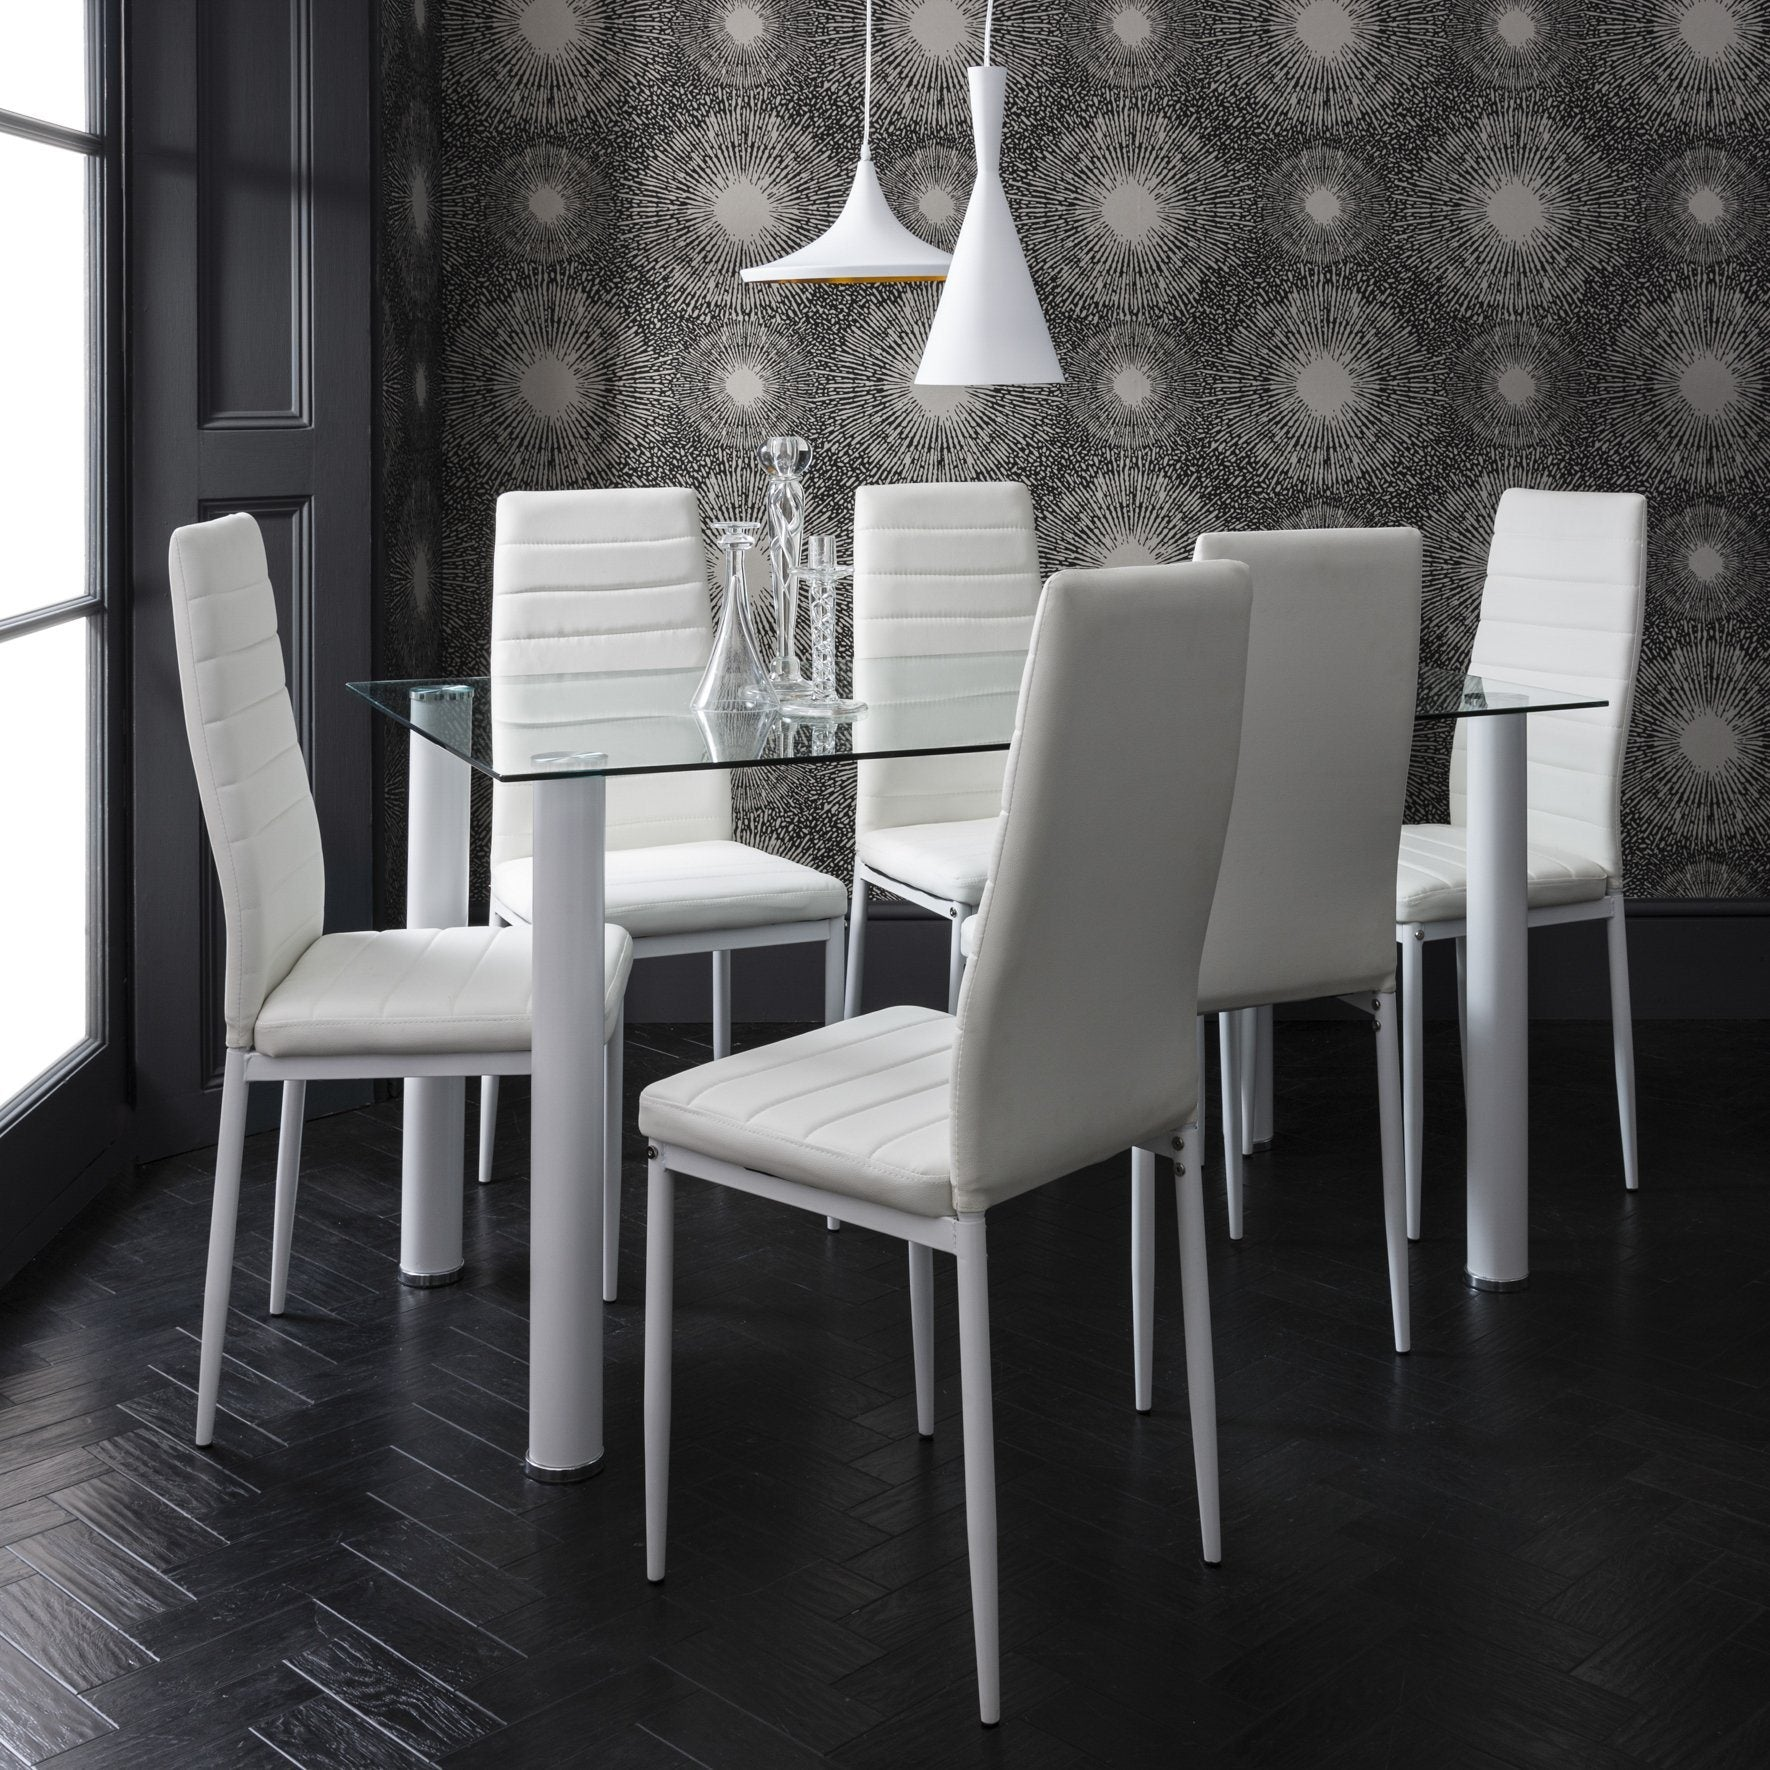 Picture of: White Dining Table And Chairs 6 Seater Set Delivery On Or Before 1 Laura James